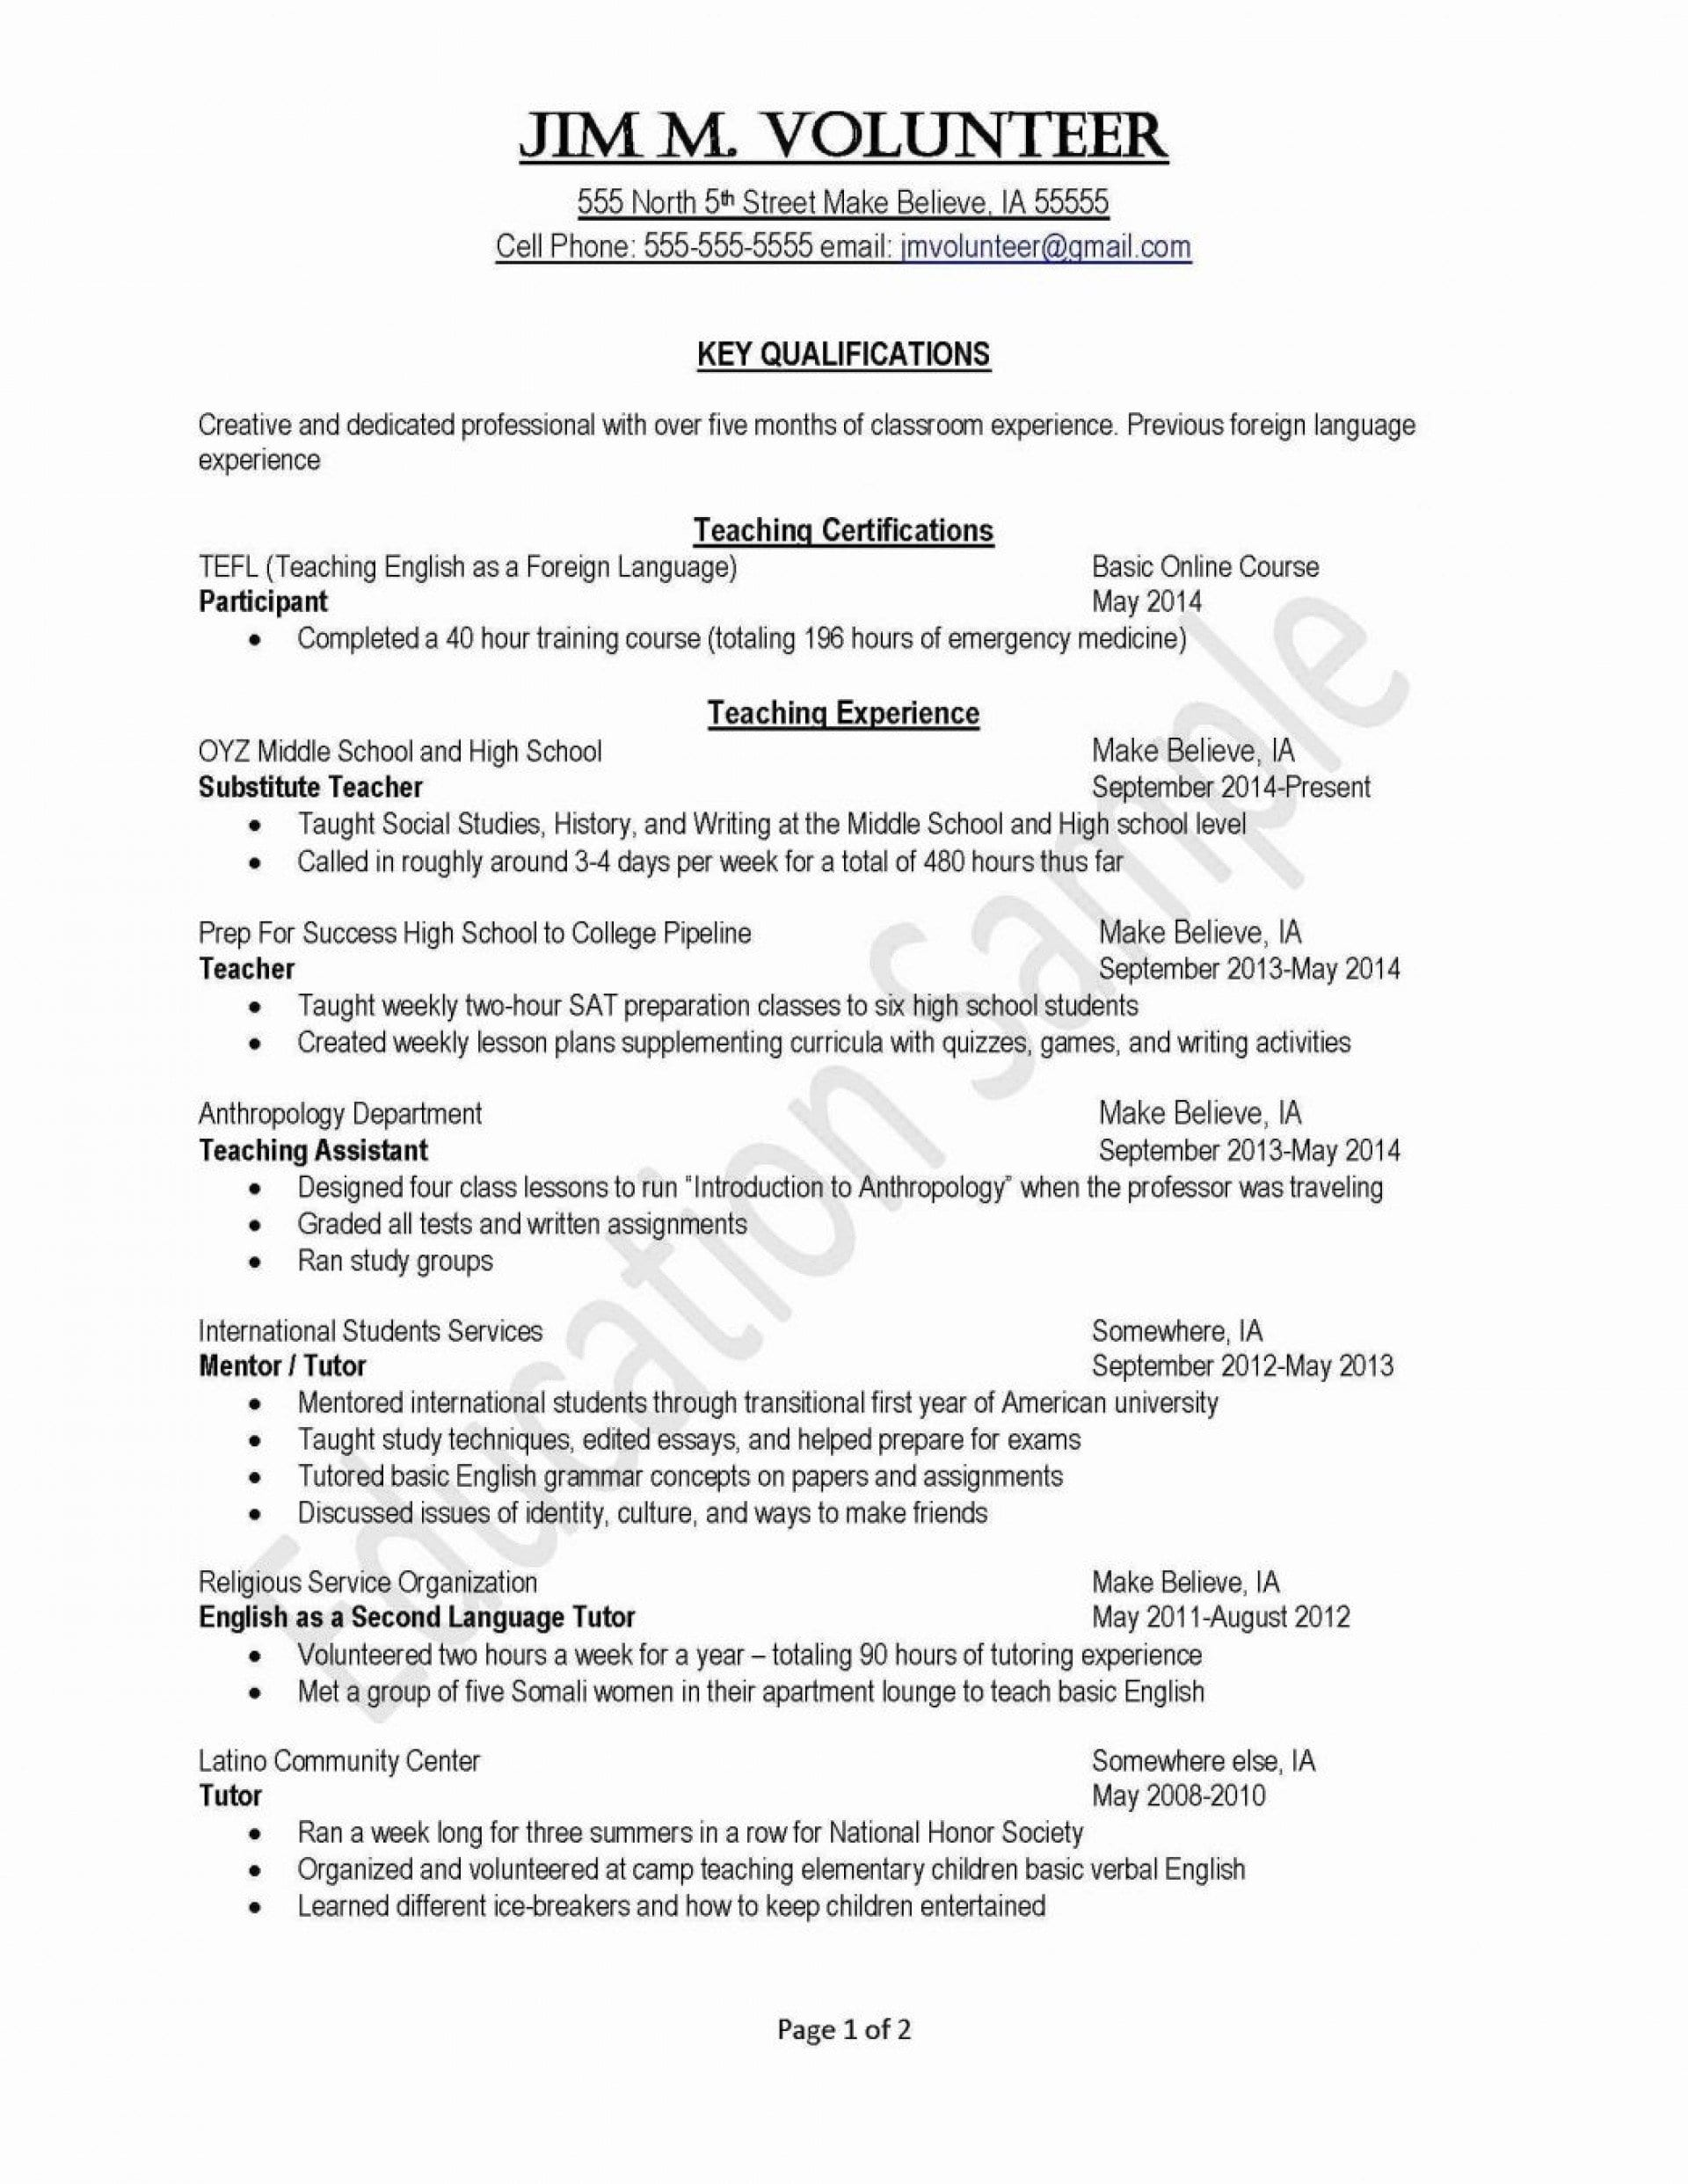 College Research Worksheet For High School Students Math Worksheets Within College Research Worksheet For High School Students